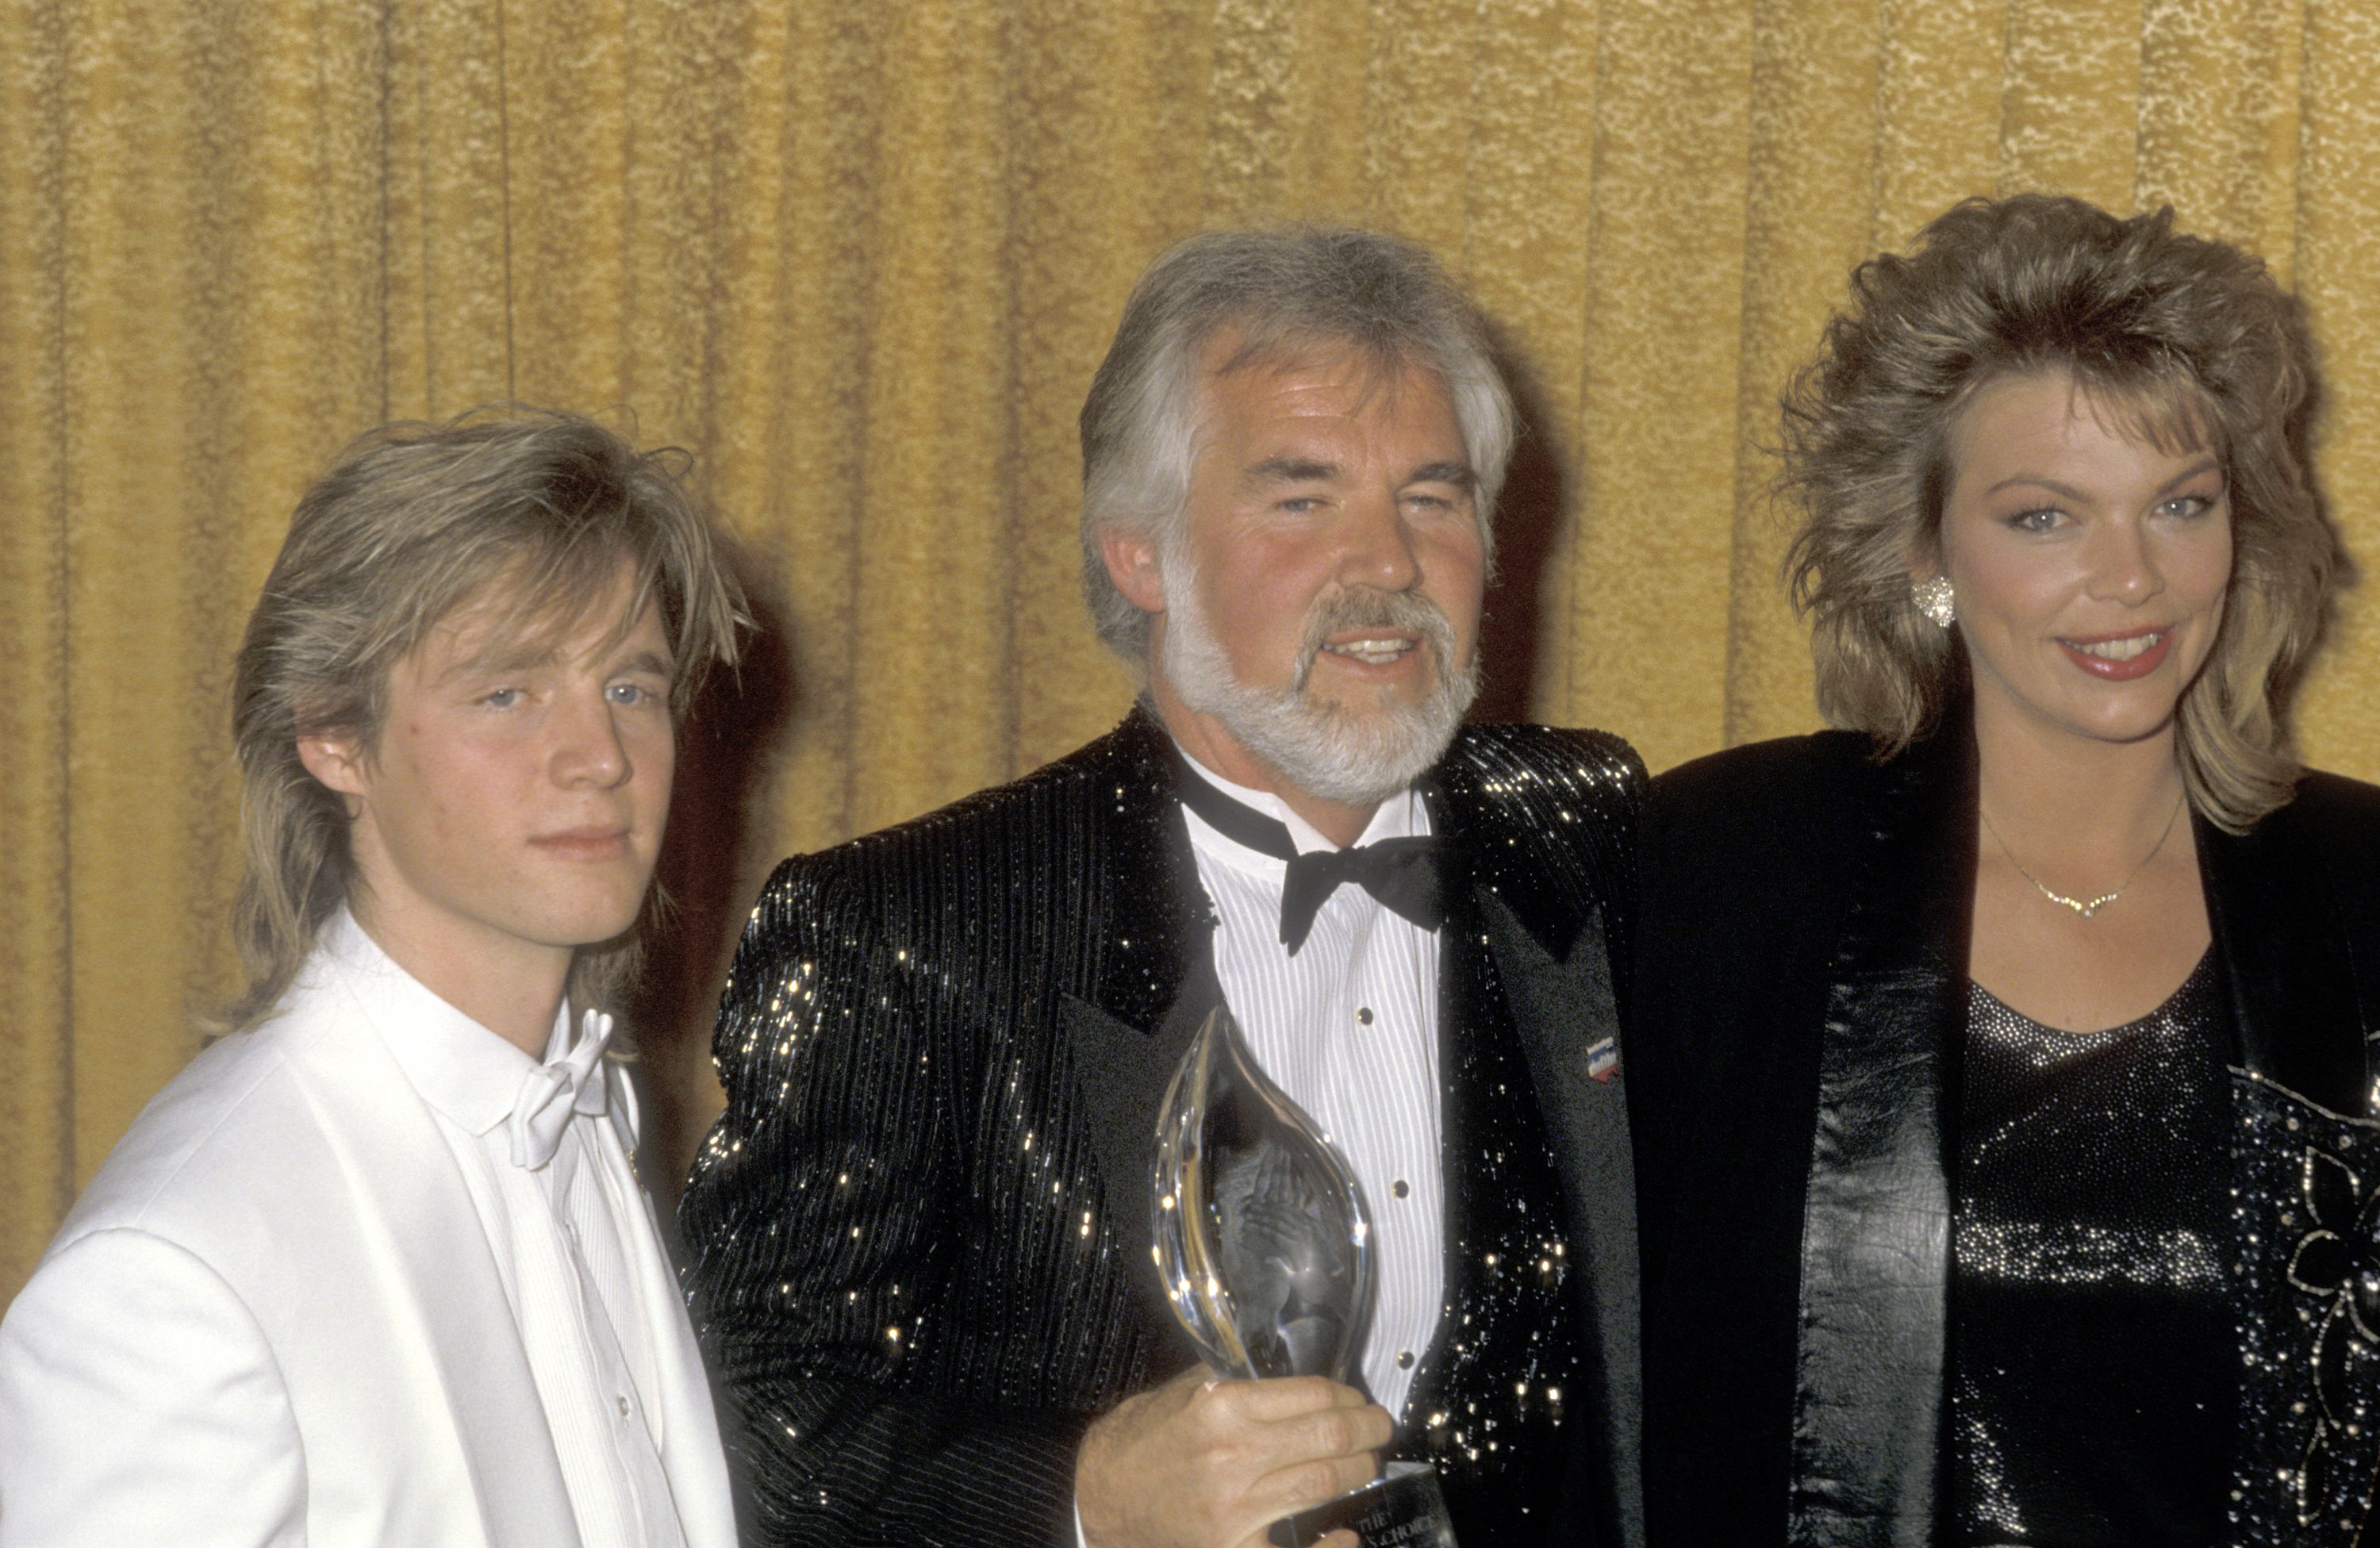 Kenny Rogers, son Kenny Rogers, Jr. and daughter Carole Rogers at the 12th Annual People's Choice Awards in 1986 | Source: Getty Images